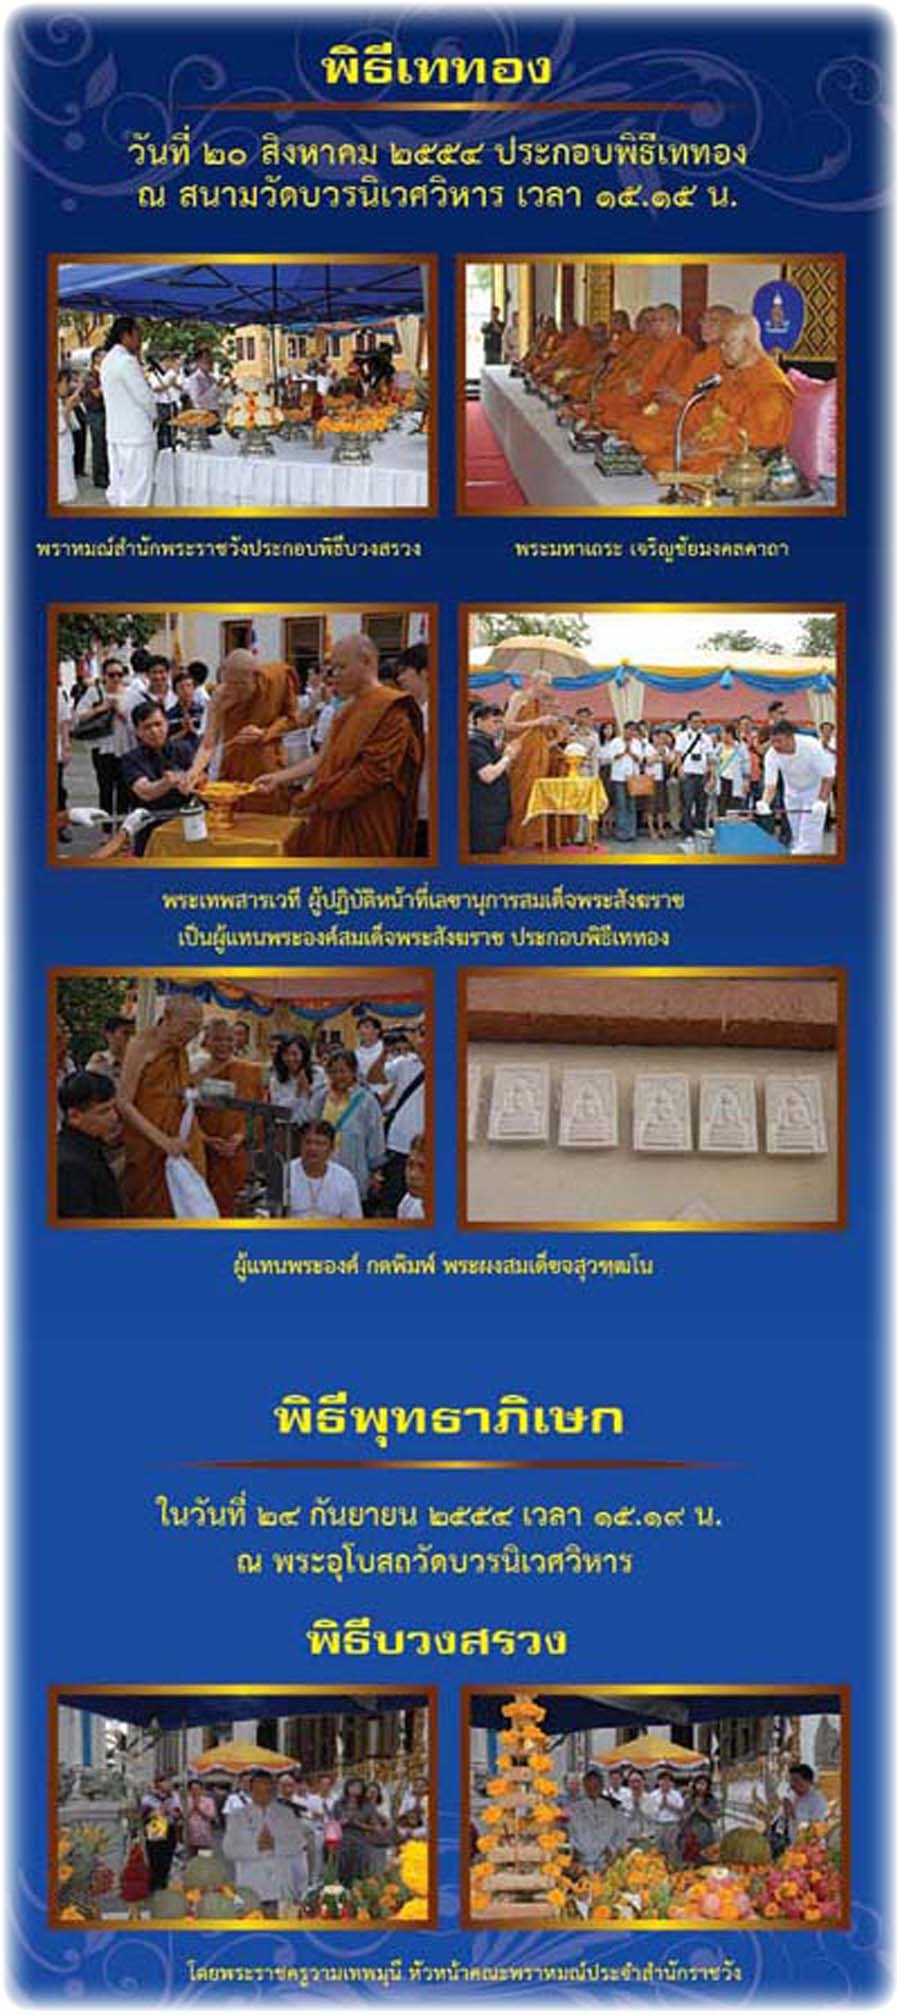 Sacred casting ceremony for Pra Kring Suwattano amulets in 2554 BE at Wat Bovornives